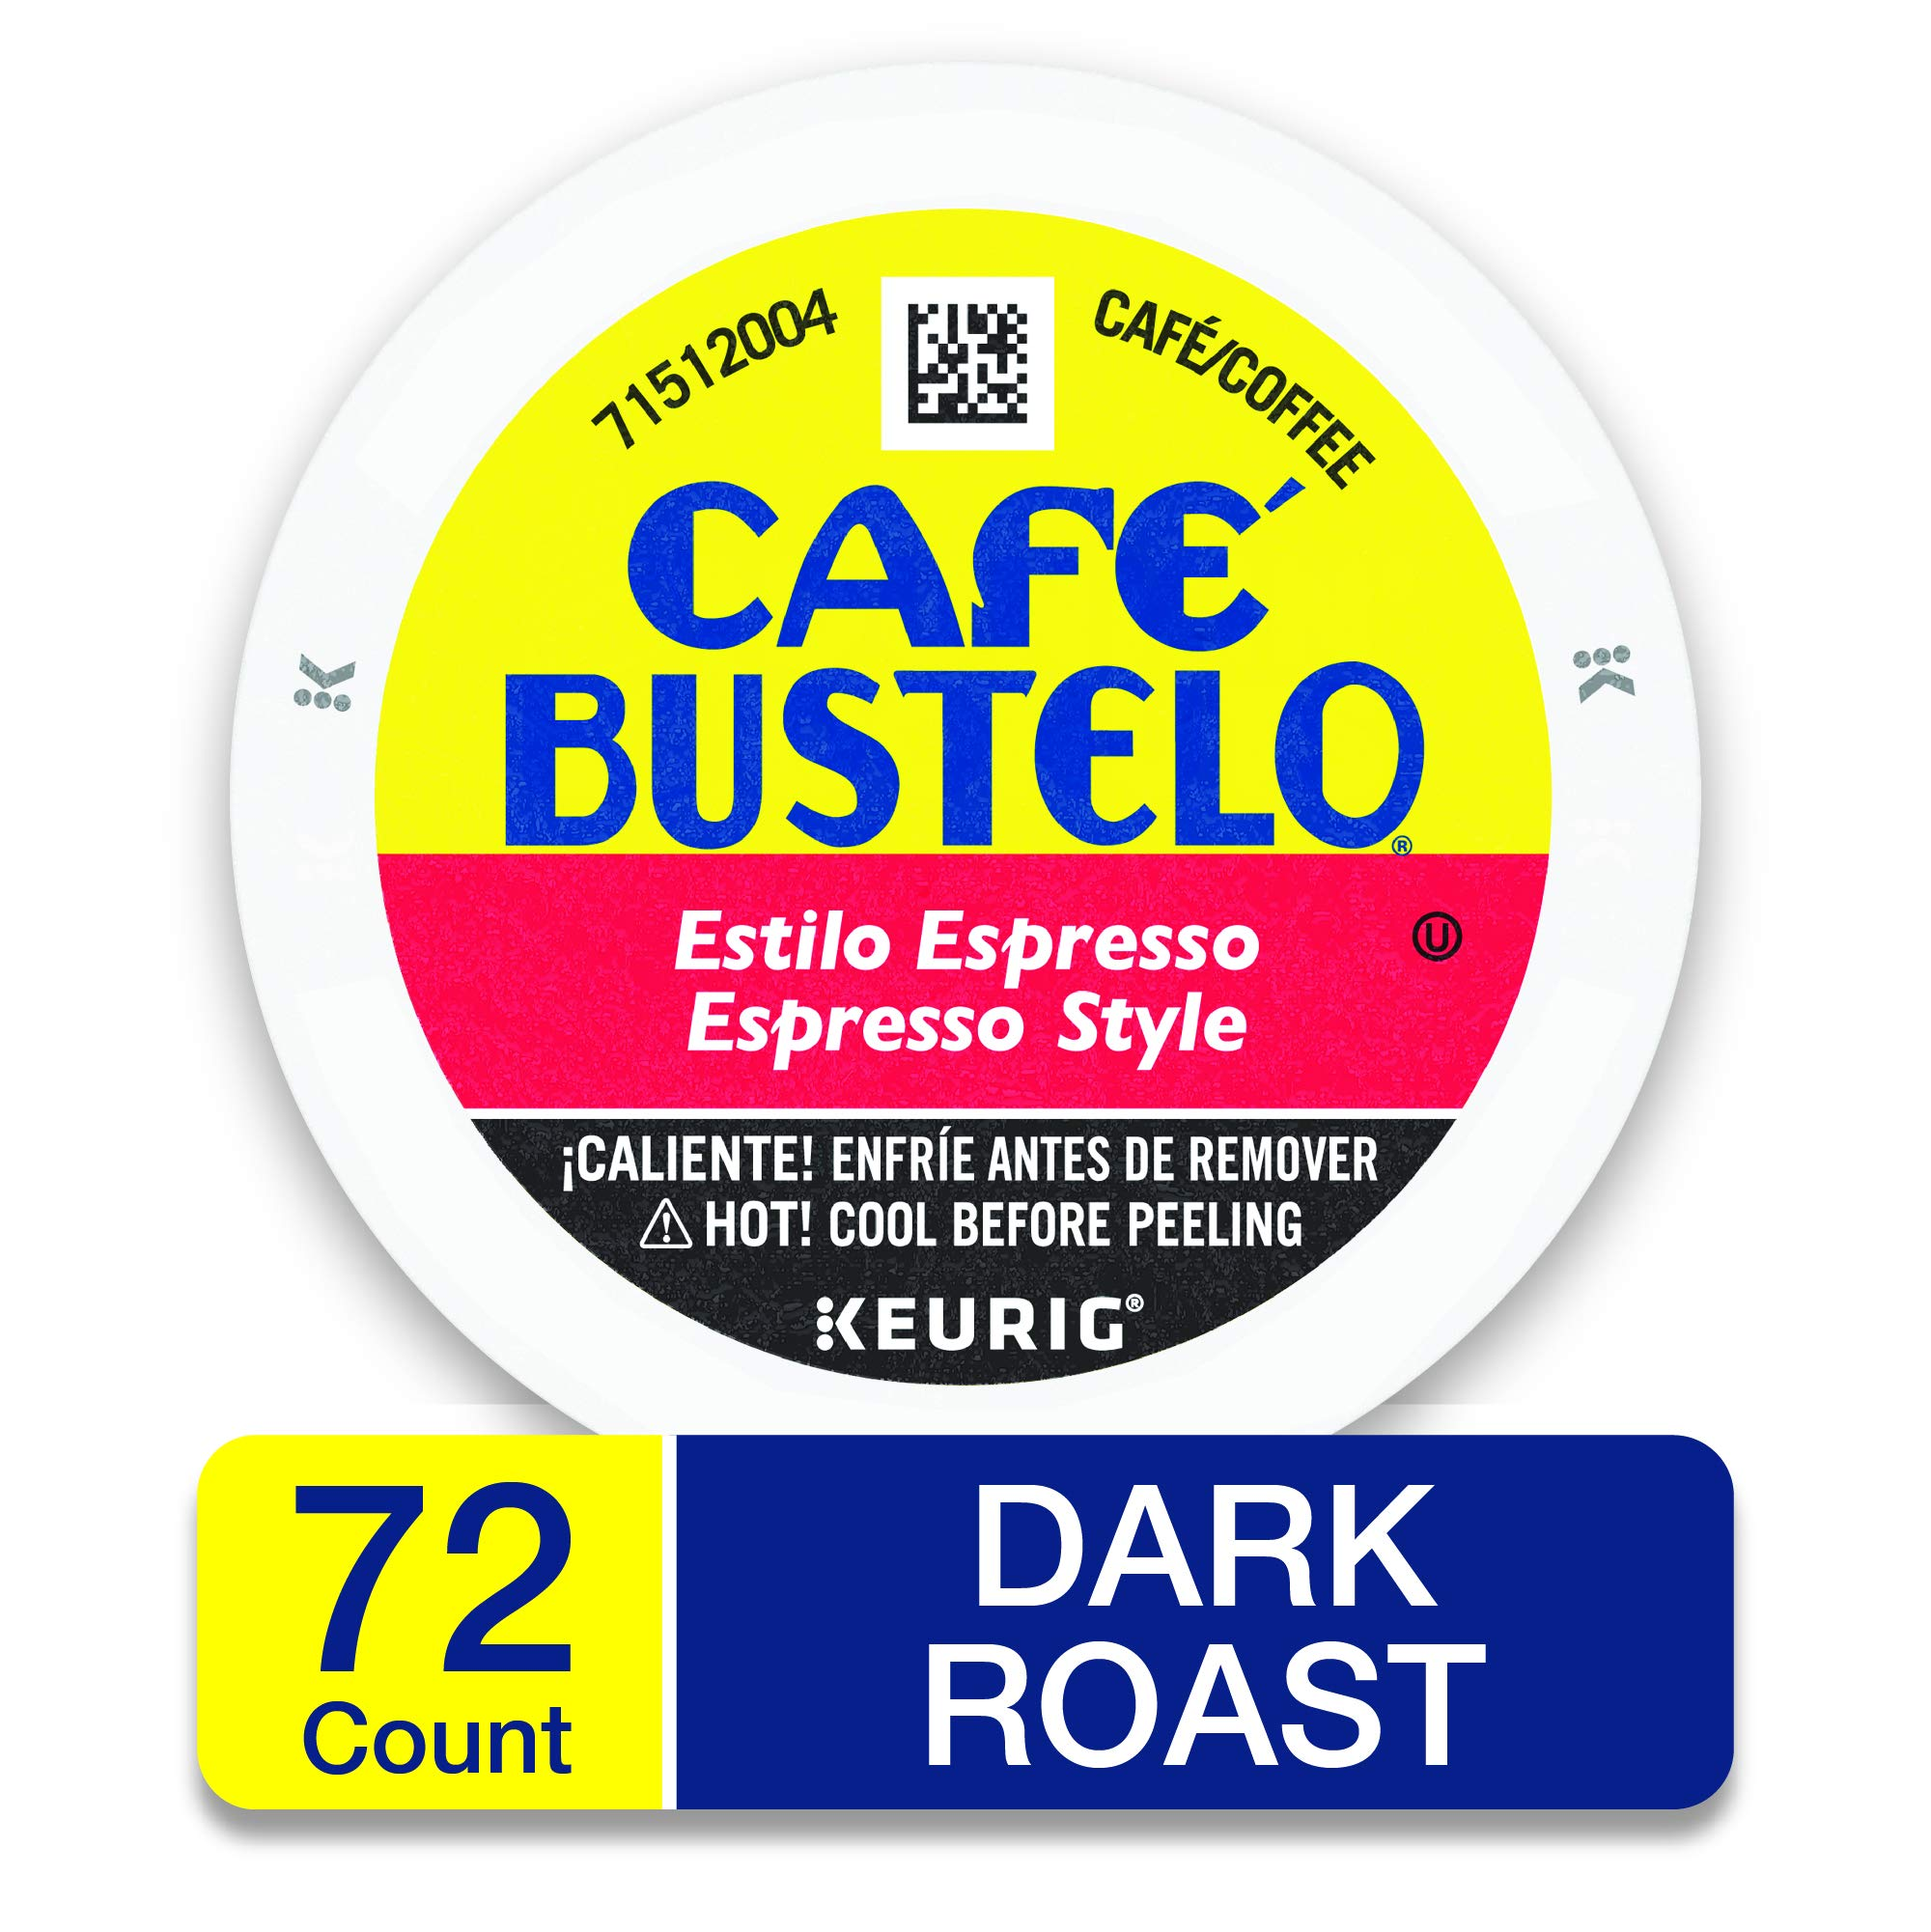 Café Bustelo Espresso Style K Cup Pods for Keurig Brewers, Dark Roast Coffee, 12Count (Pack of 6) by Cafe Bustelo